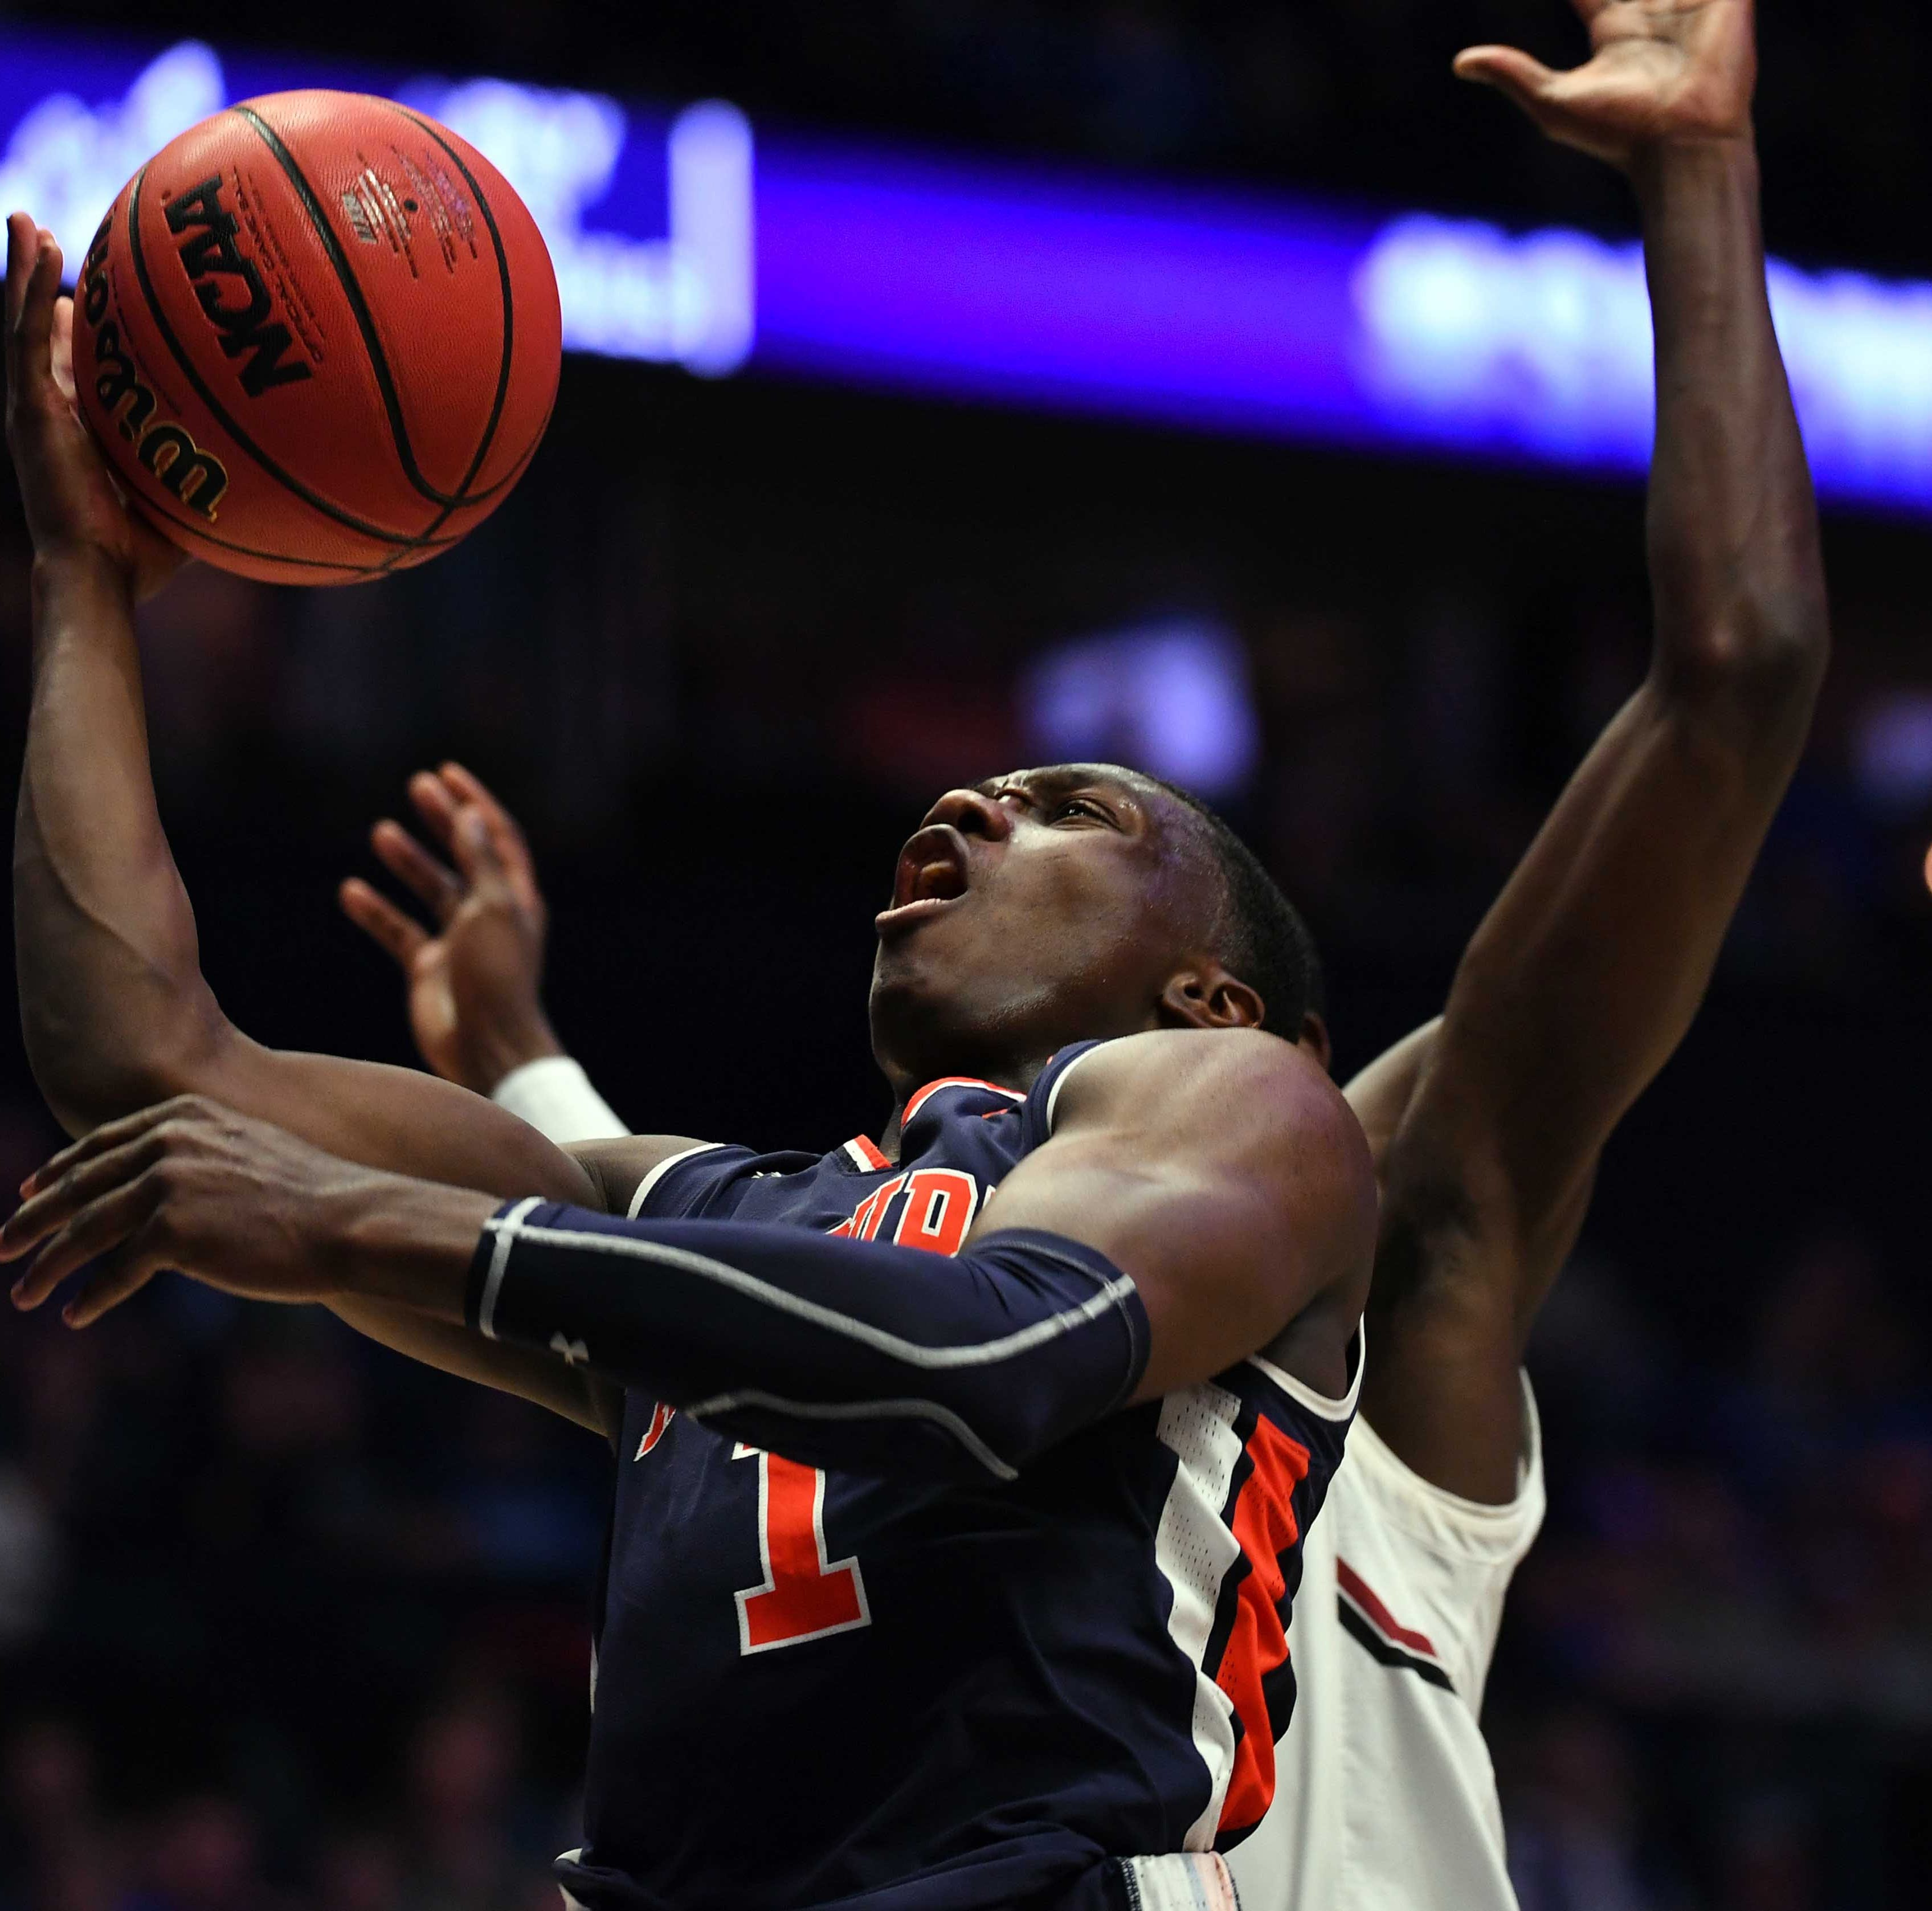 SEC Tournament 2019: How to watch Auburn vs. Florida basketball on TV, stream online